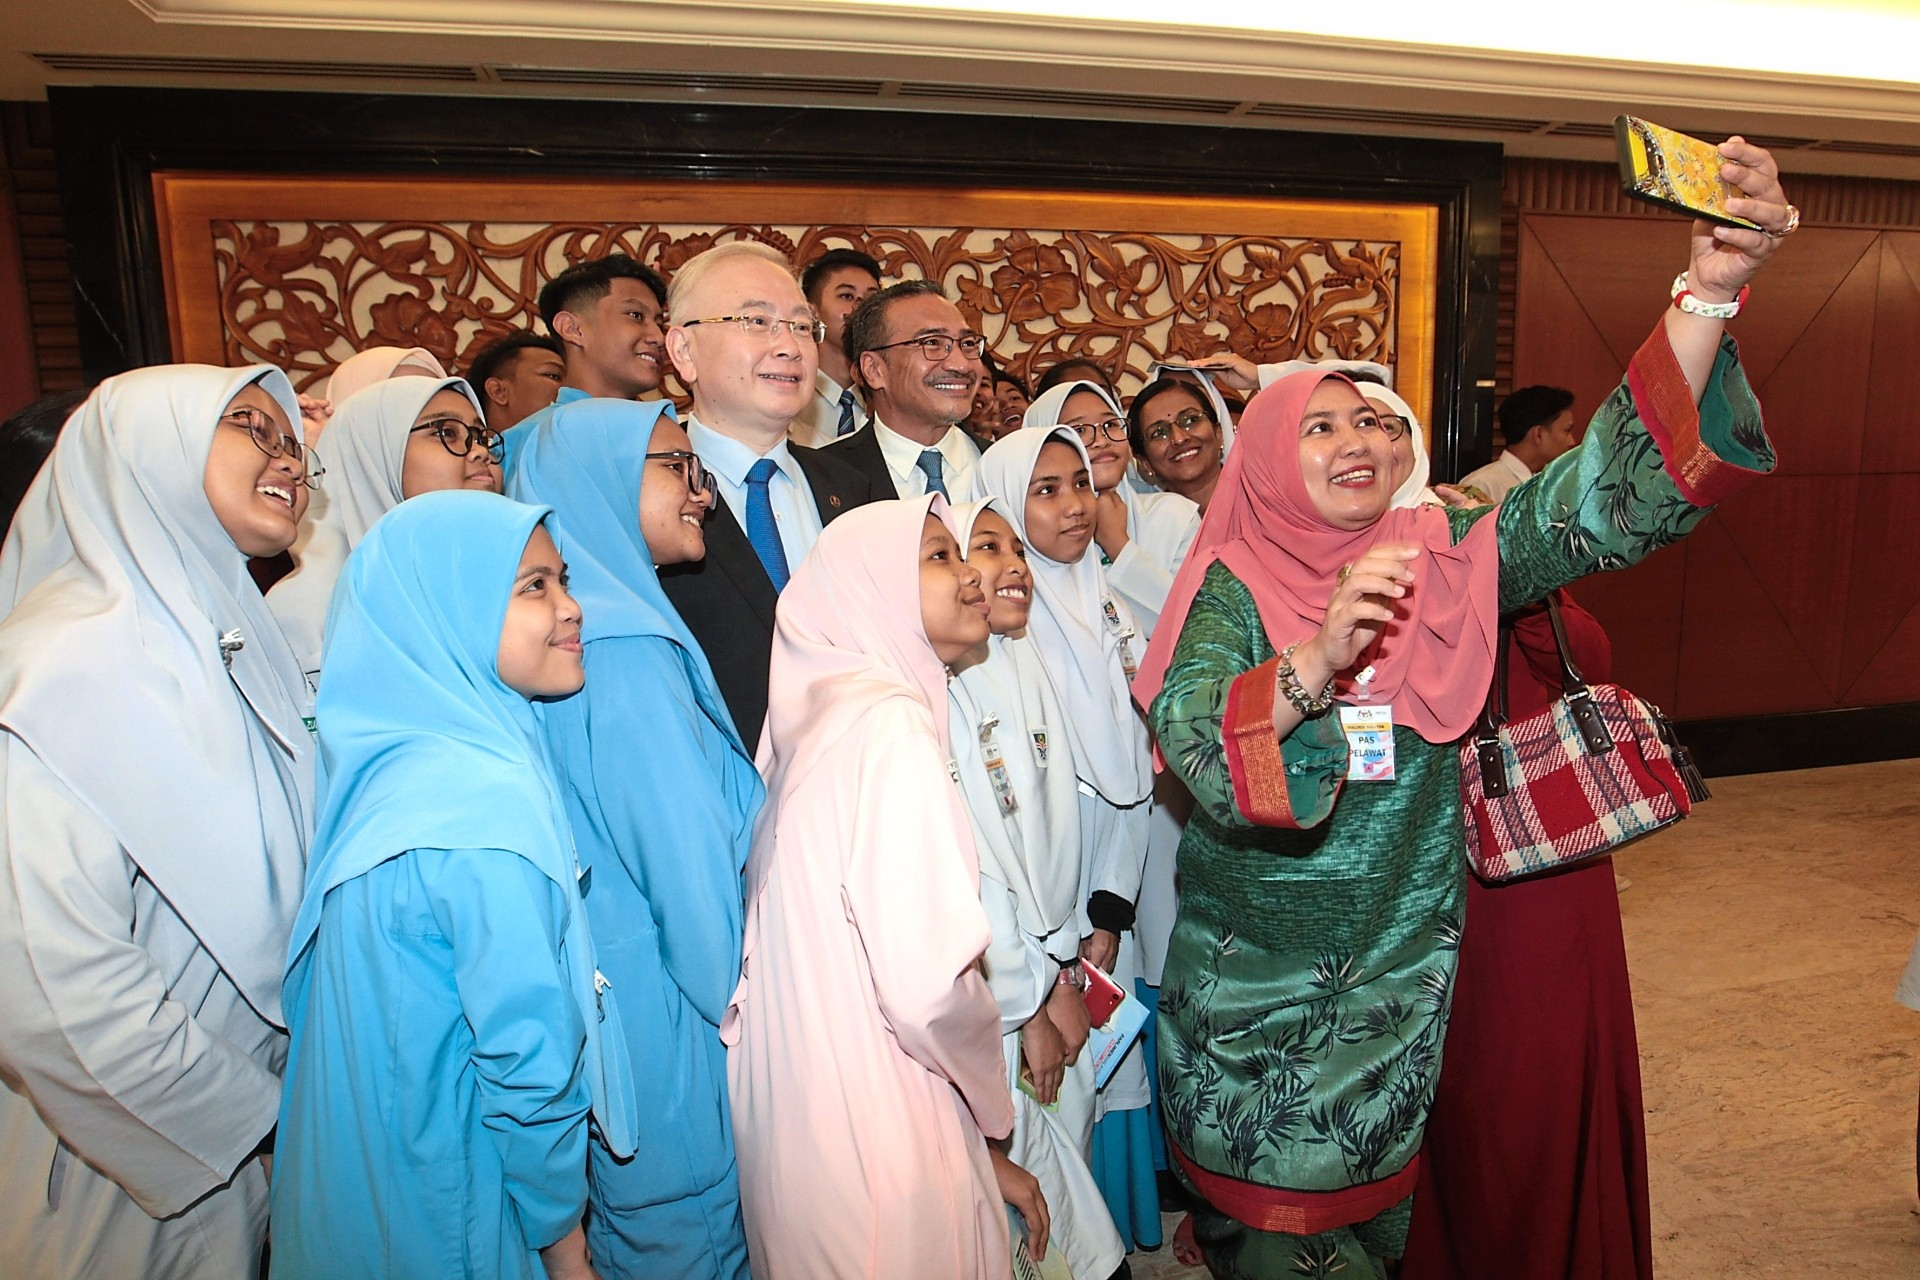 All together now: Dr Wee and Datuk Seri Hishammuddin Husseinobliging students and teachers from SMK Bandar Baru Sungai Buloh for a wefie in Parliament.